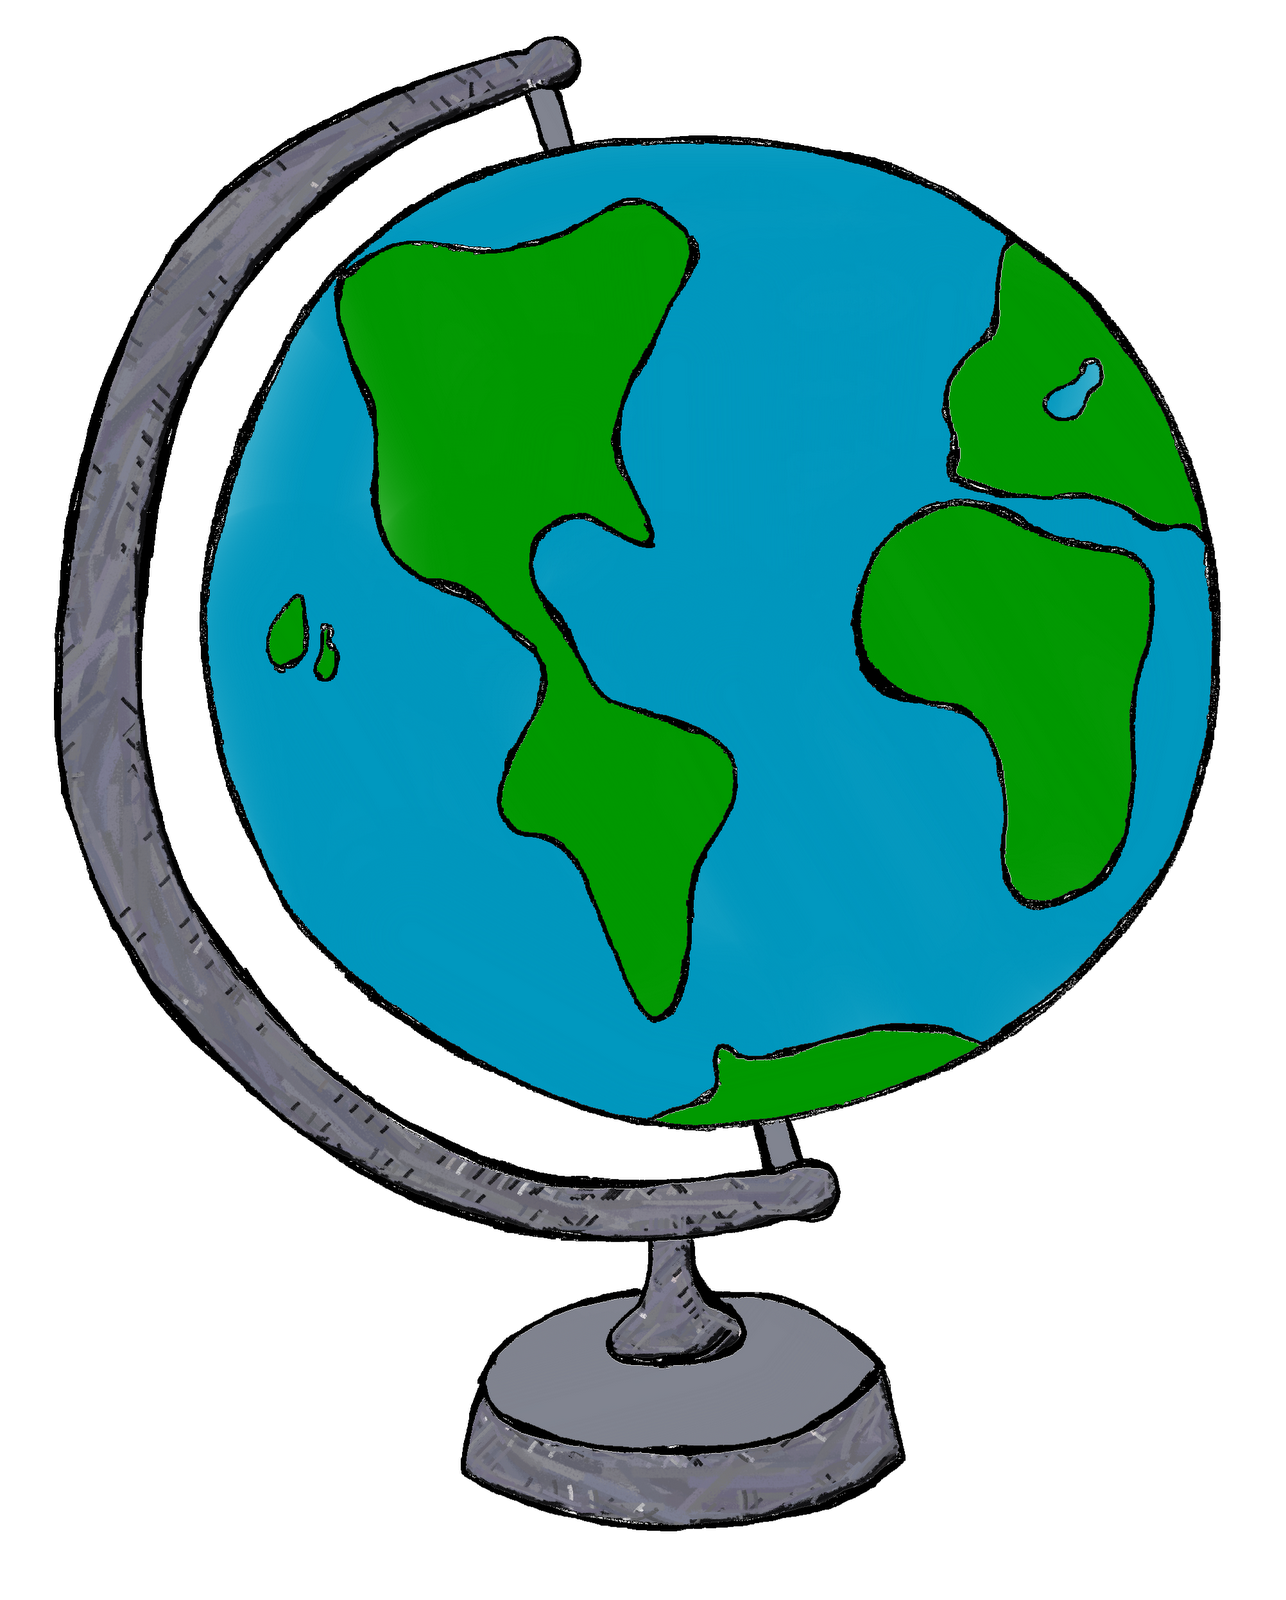 Geography clipart globe Free earth Images Clipart clipart